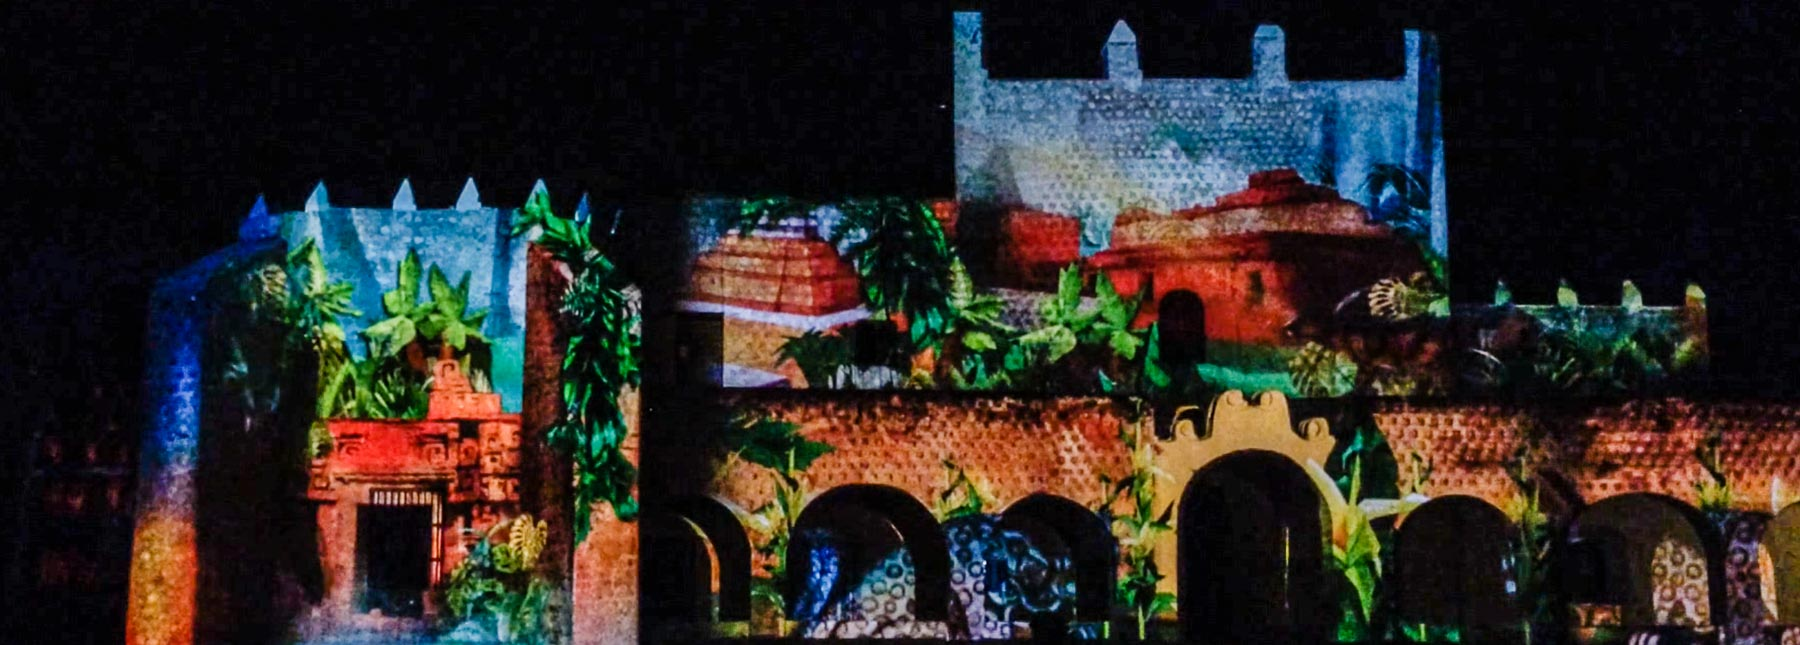 Light show on the convent walls in Valladolid.